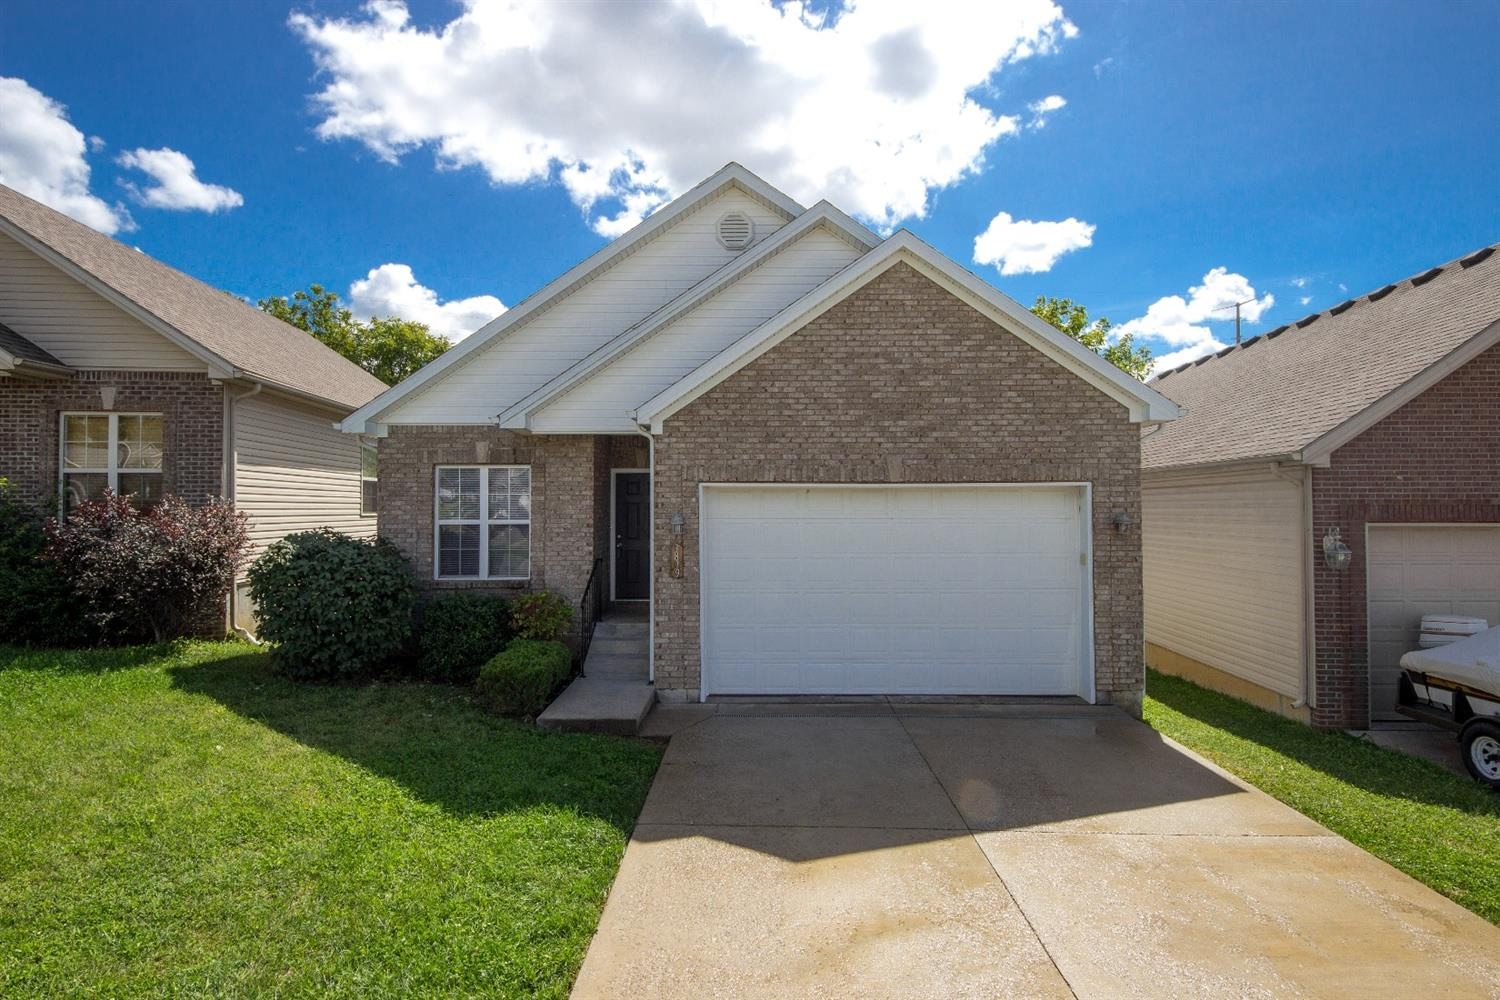 WOW!%20MUST%20see!!%20Not%20to%20mention%20Move-in%20READY!!%20This%20adorable%20home%20has%203%20bedrooms%20and%202.5%20baths!%20The%20home%20has%20beautiful%20hardwood%20floors%20throughout%20the%20house%20including%20the%20half%20bath%20and%20tile%20in%20the%20bathrooms%20with%20carpet%20in%20the%20bedrooms!%20In%20the%20front%20of%20the%20house%20you%20can%20make%20the%20extra%20room%20a%20sitting%20room%20or%20even%20an%20office!%20The%20open%20kitchen%20has%20unique%20cabinets%20with%20all%20black%20appliances.%20Wow%20talk%20about%20an%20open%20floor%20plan%20the%20kitchen%20looks%20over%20the%20Dining%20area%20and%20living%20room%20perfect%20for%20entertaining!%20The%20large%20room%20has%20vaulted%20ceilings%20making%20the%20living%20room%20even%20more%20spacious%20and%20with%20the%20double%20doors%20leading%20outside%20the%20house%20is%20just%20full%20of%20natural%20light!%20The%20generously%20sized%20bedrooms%20offer%20large%20closets%20featuring%20a%20walk-in%20closet%20in%20the%20Master%20bedroom%20and%20beautiful%20tile%20work%20in%20the%20shower!%20The%20unique%20cabinets%20flow%20throughout%20the%20house%20in%20the%20kitchen%20as%20well%20as%20the%20bathrooms!%20The%20partially%20finished%20basement%20is%20perfect%20for%20extra%20storage!%20Give%20us%20a%20call!!